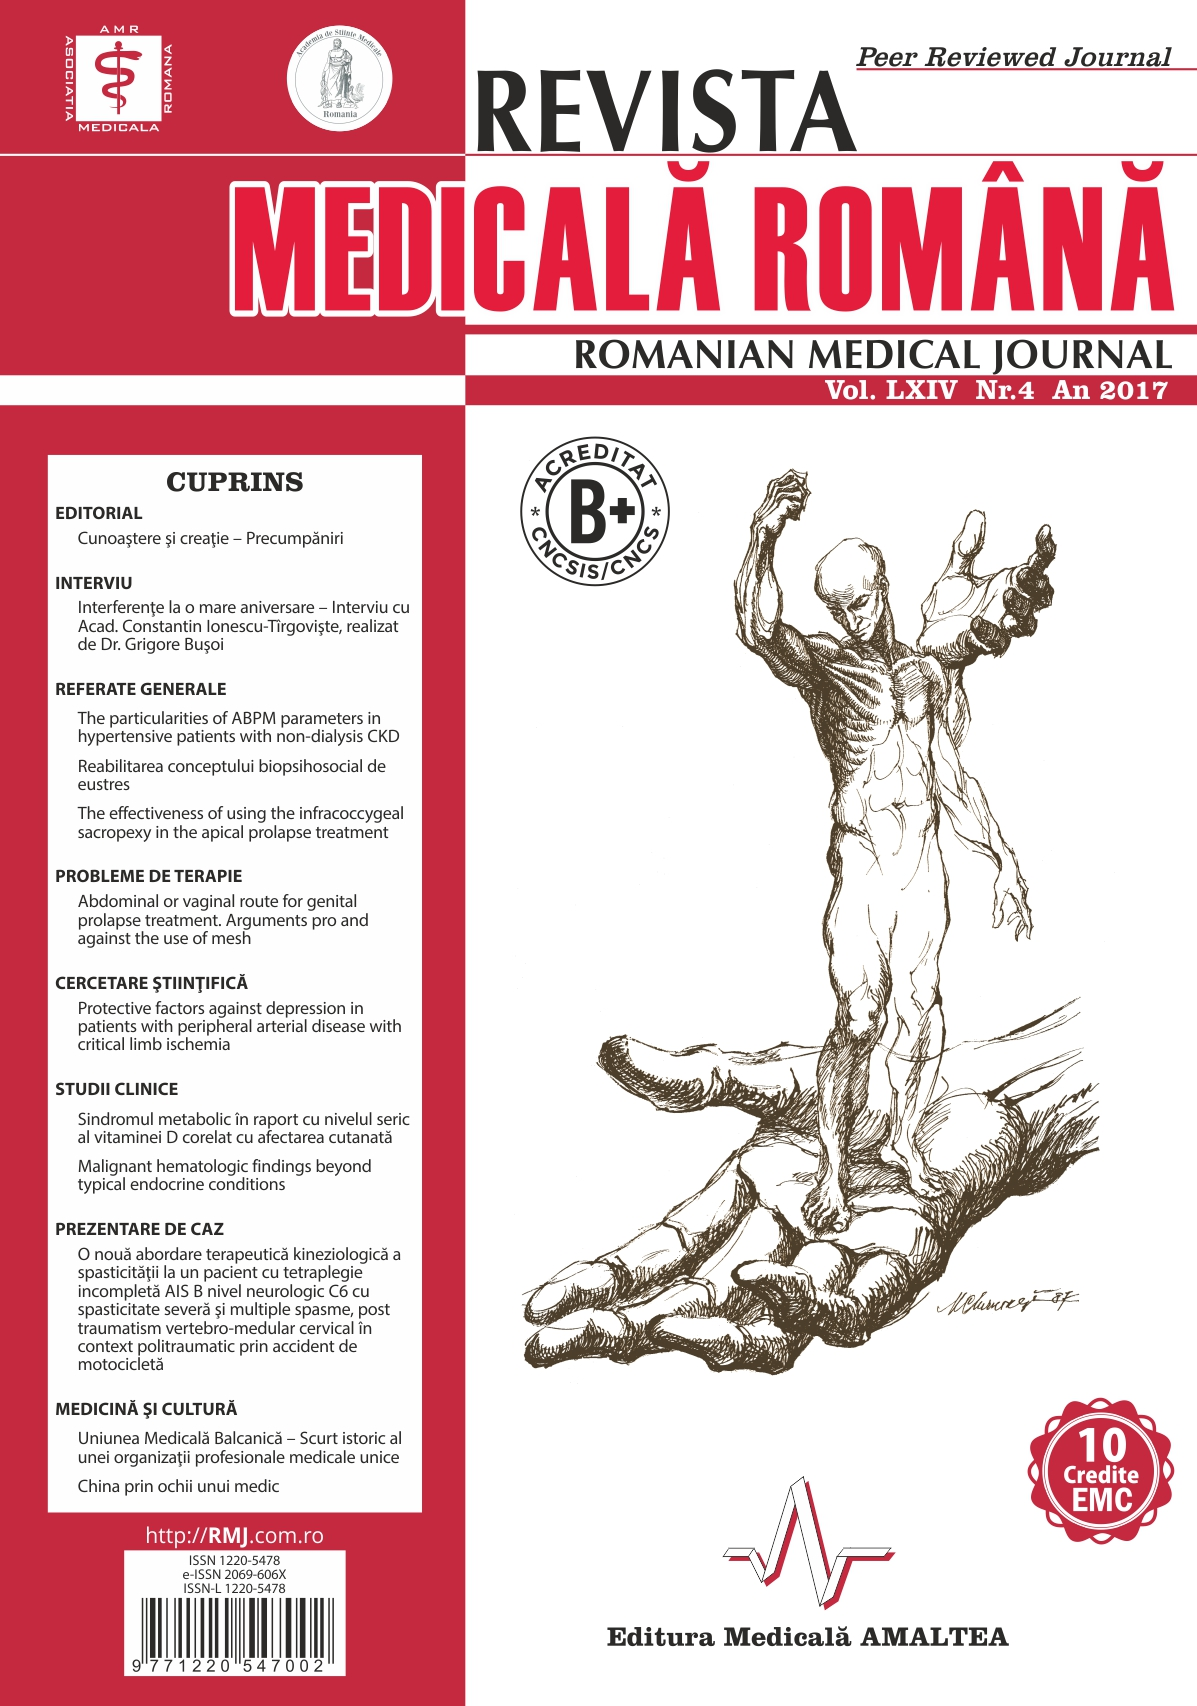 REVISTA MEDICALA ROMANA - Romanian Medical Journal, Vol. LXIV, No. 4, Year 2017